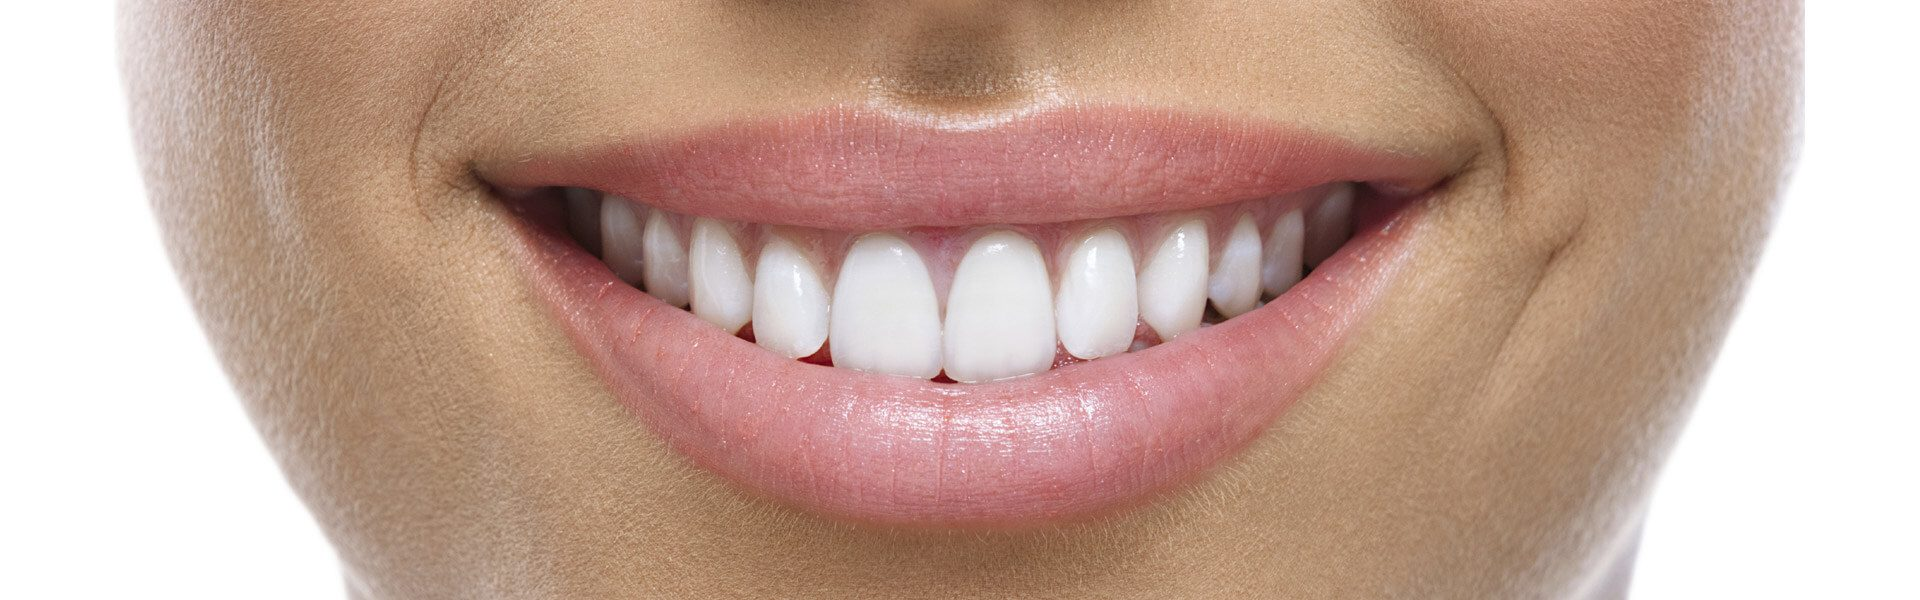 Why You Should Ditch Over-The-Counter Teeth Whitening Products